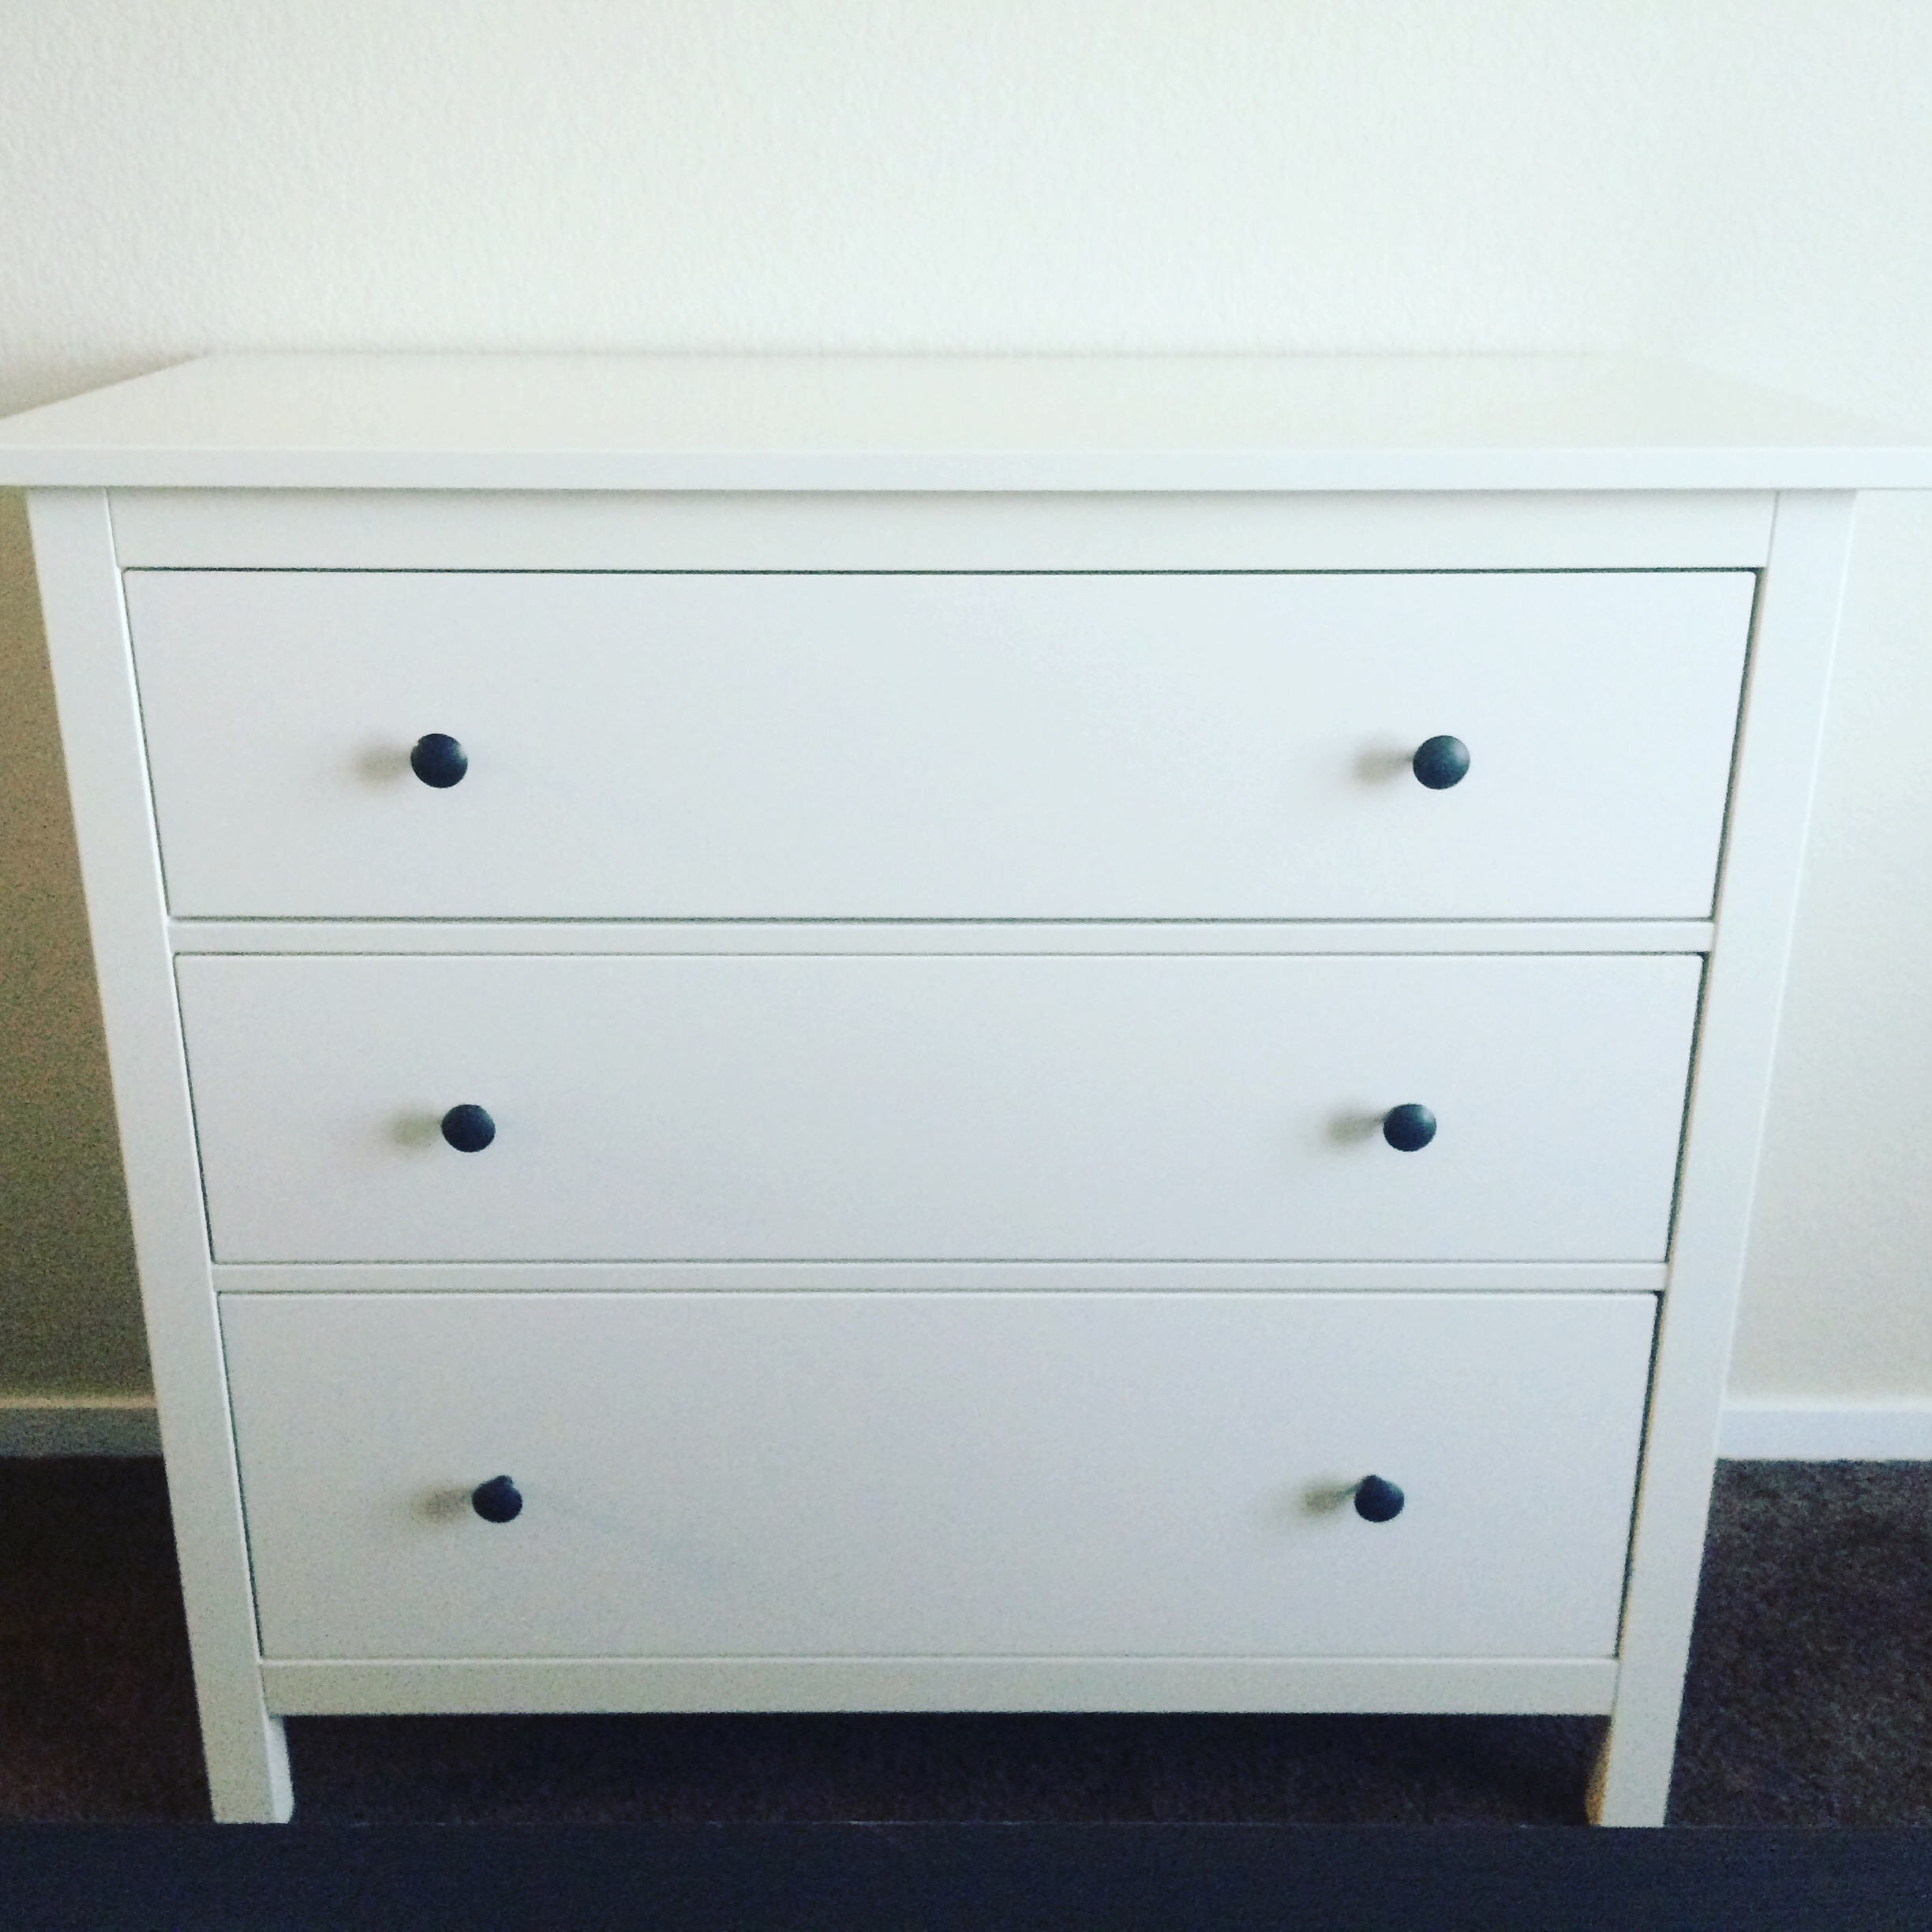 IKEA And I Assembling A Life Alone How To Find The Strength  Determination Easy Assemble Dresser12